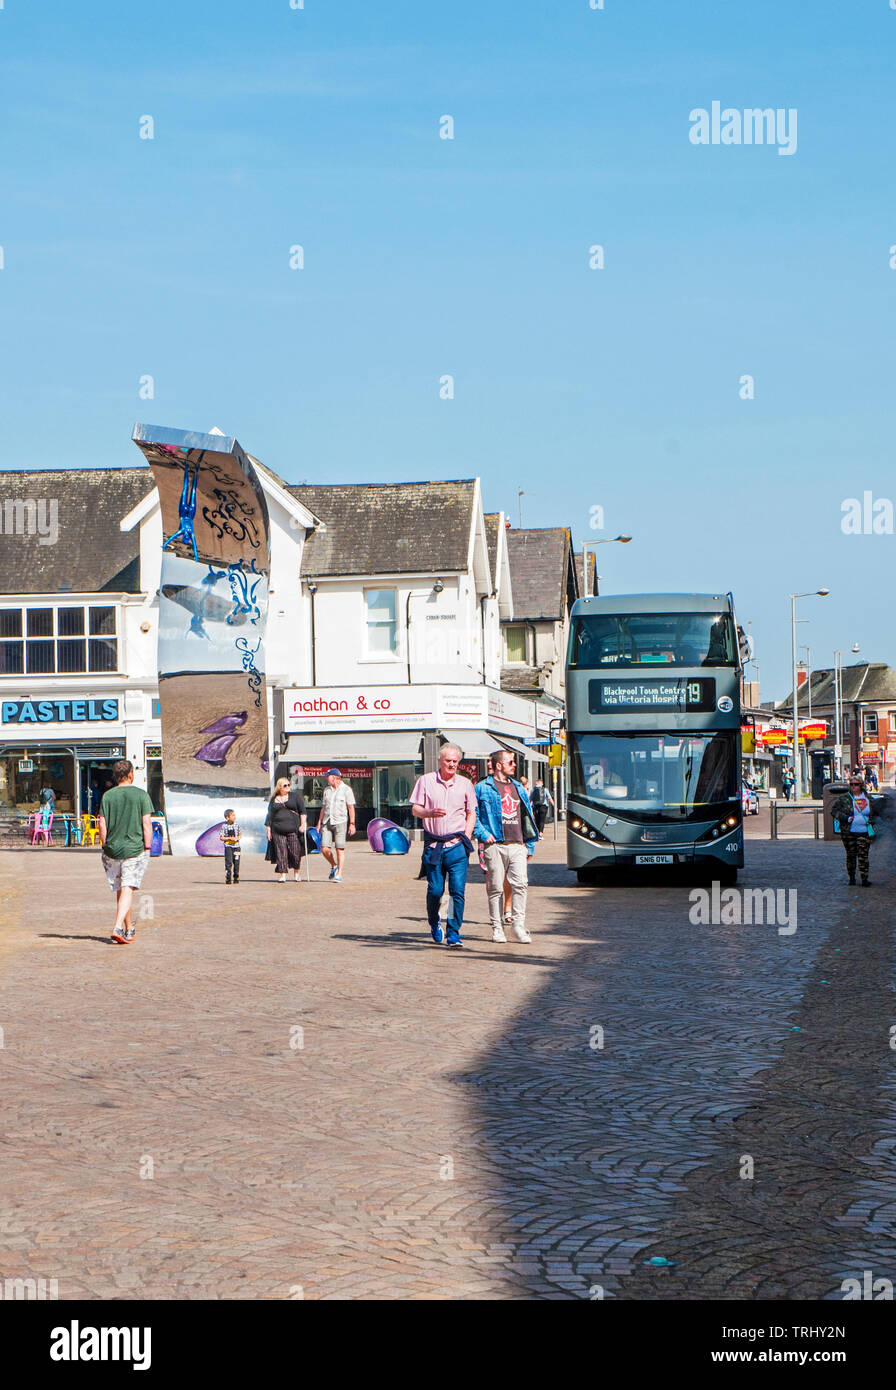 Blackpool Bus diverted through pedestrian precinct area after road closures in town centre due to laying new tramtrack - Stock Image